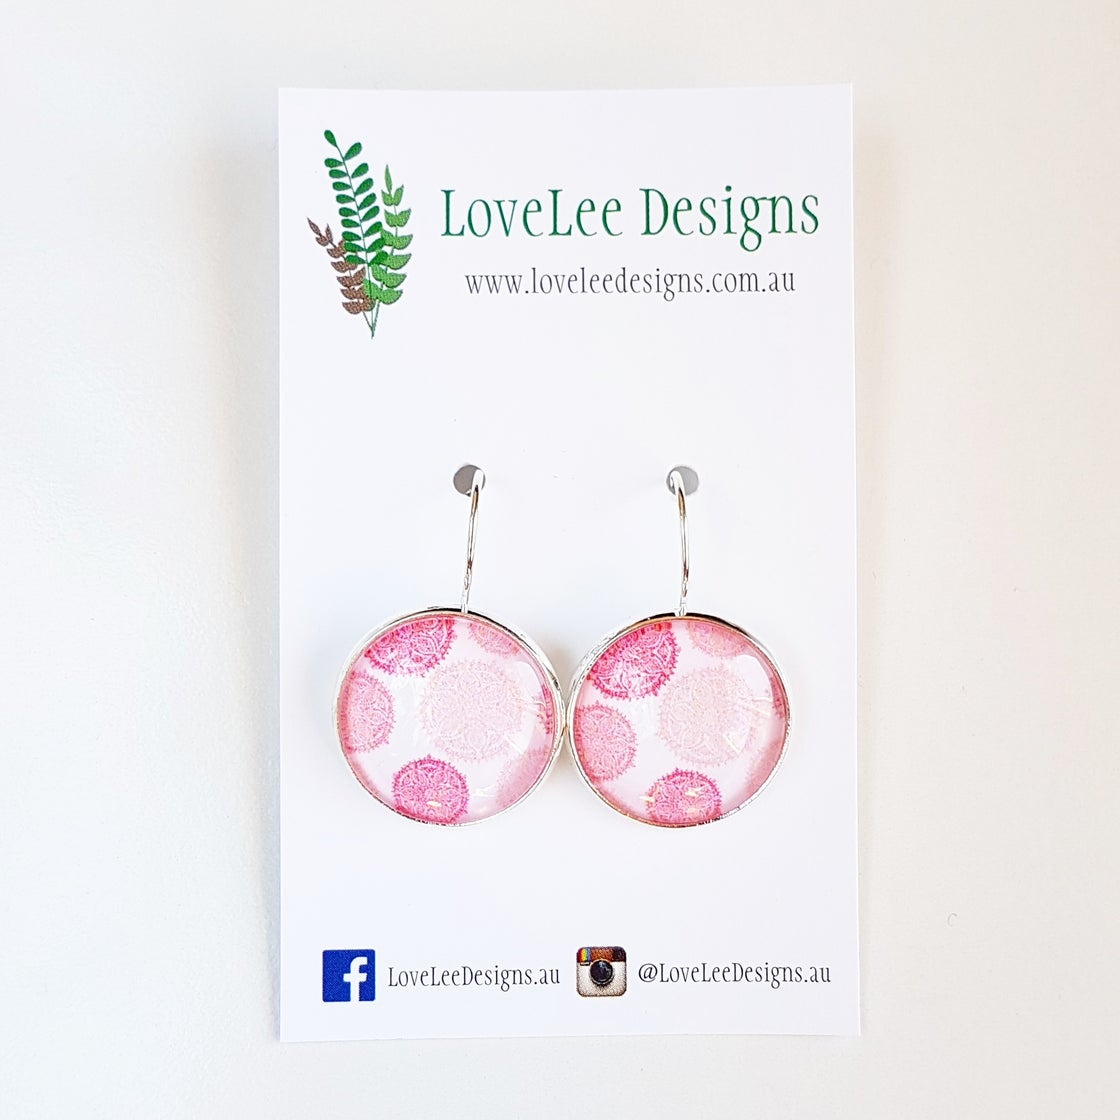 Image of Earrings - Pink Mandalas